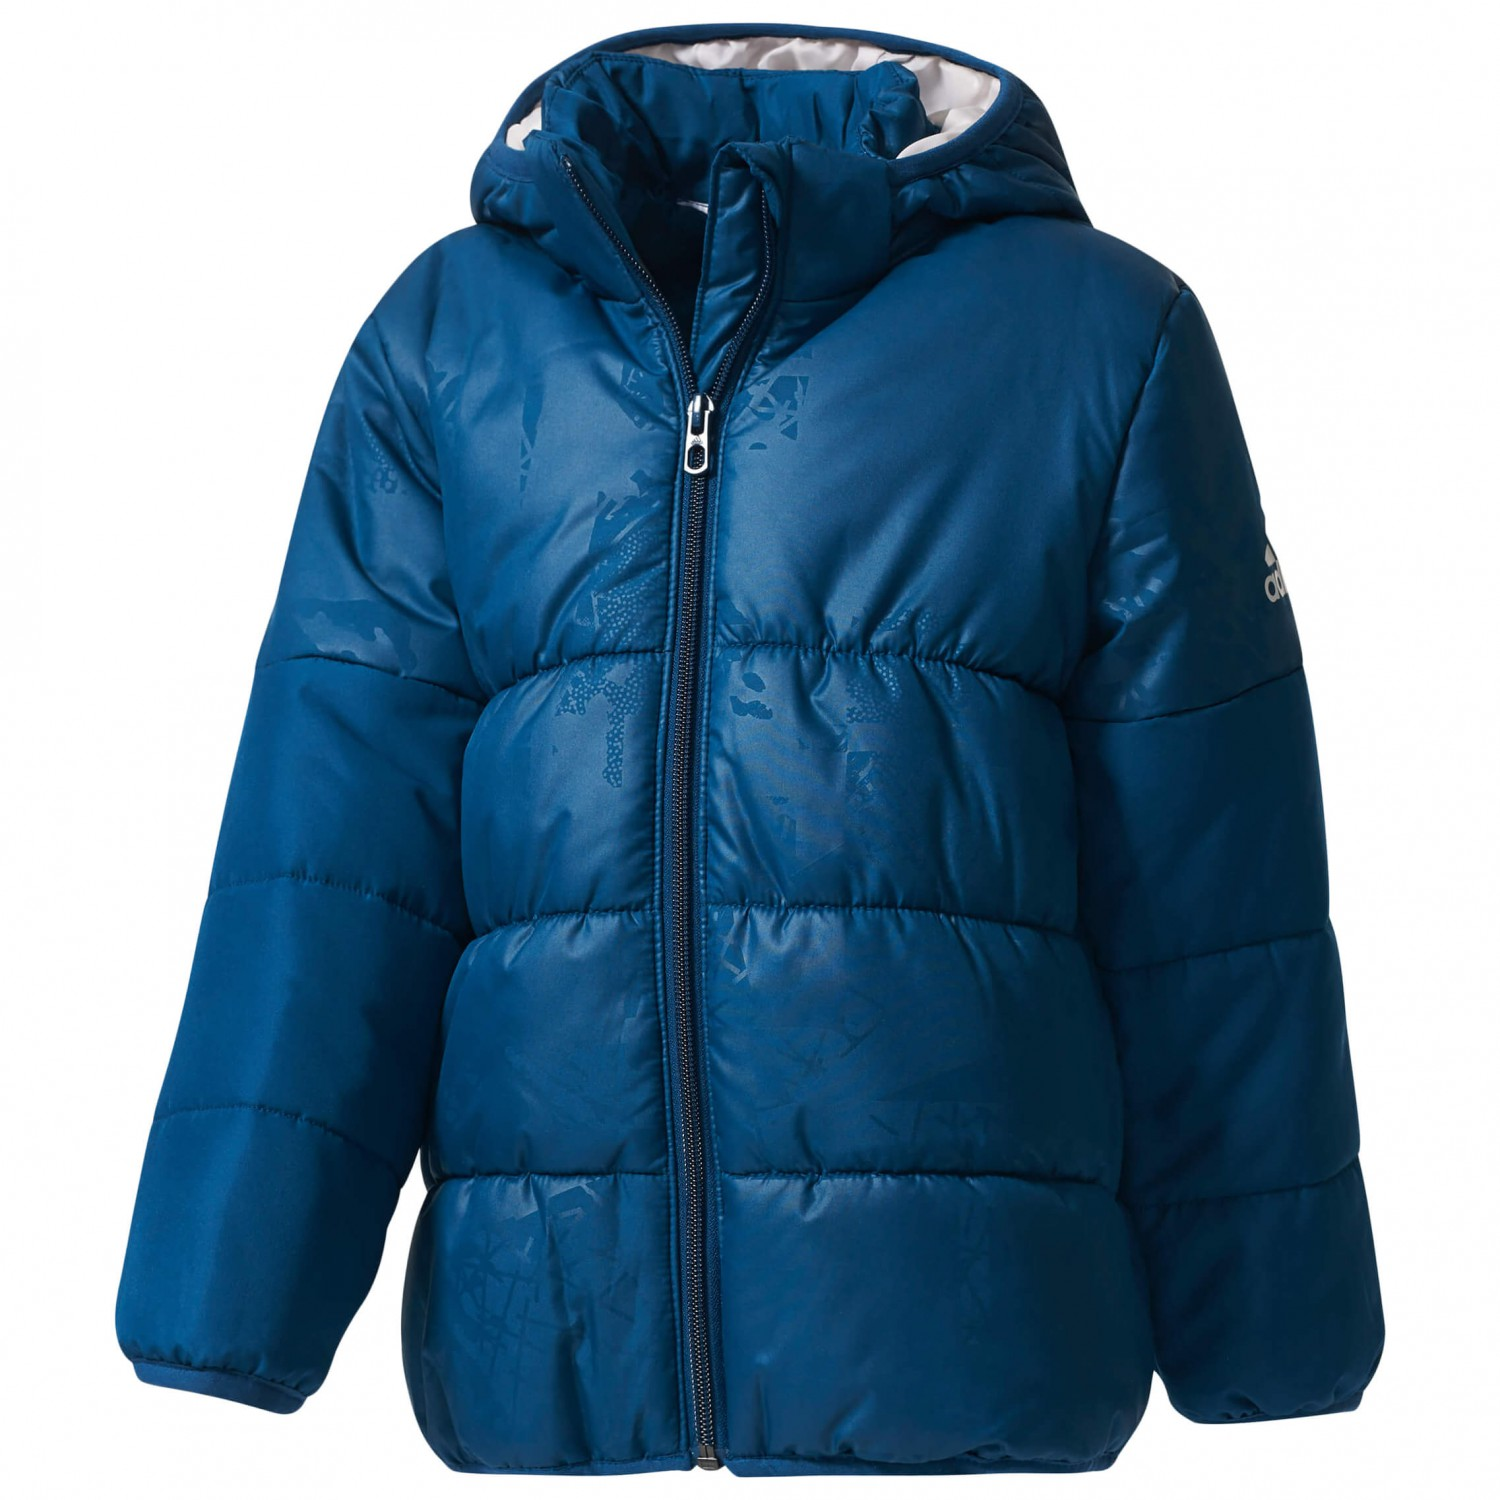 54d47e8ef832c Bambini Invernale Lb Adidas Giacca Online Jkt Pad Acquista Boy ACZzqwg